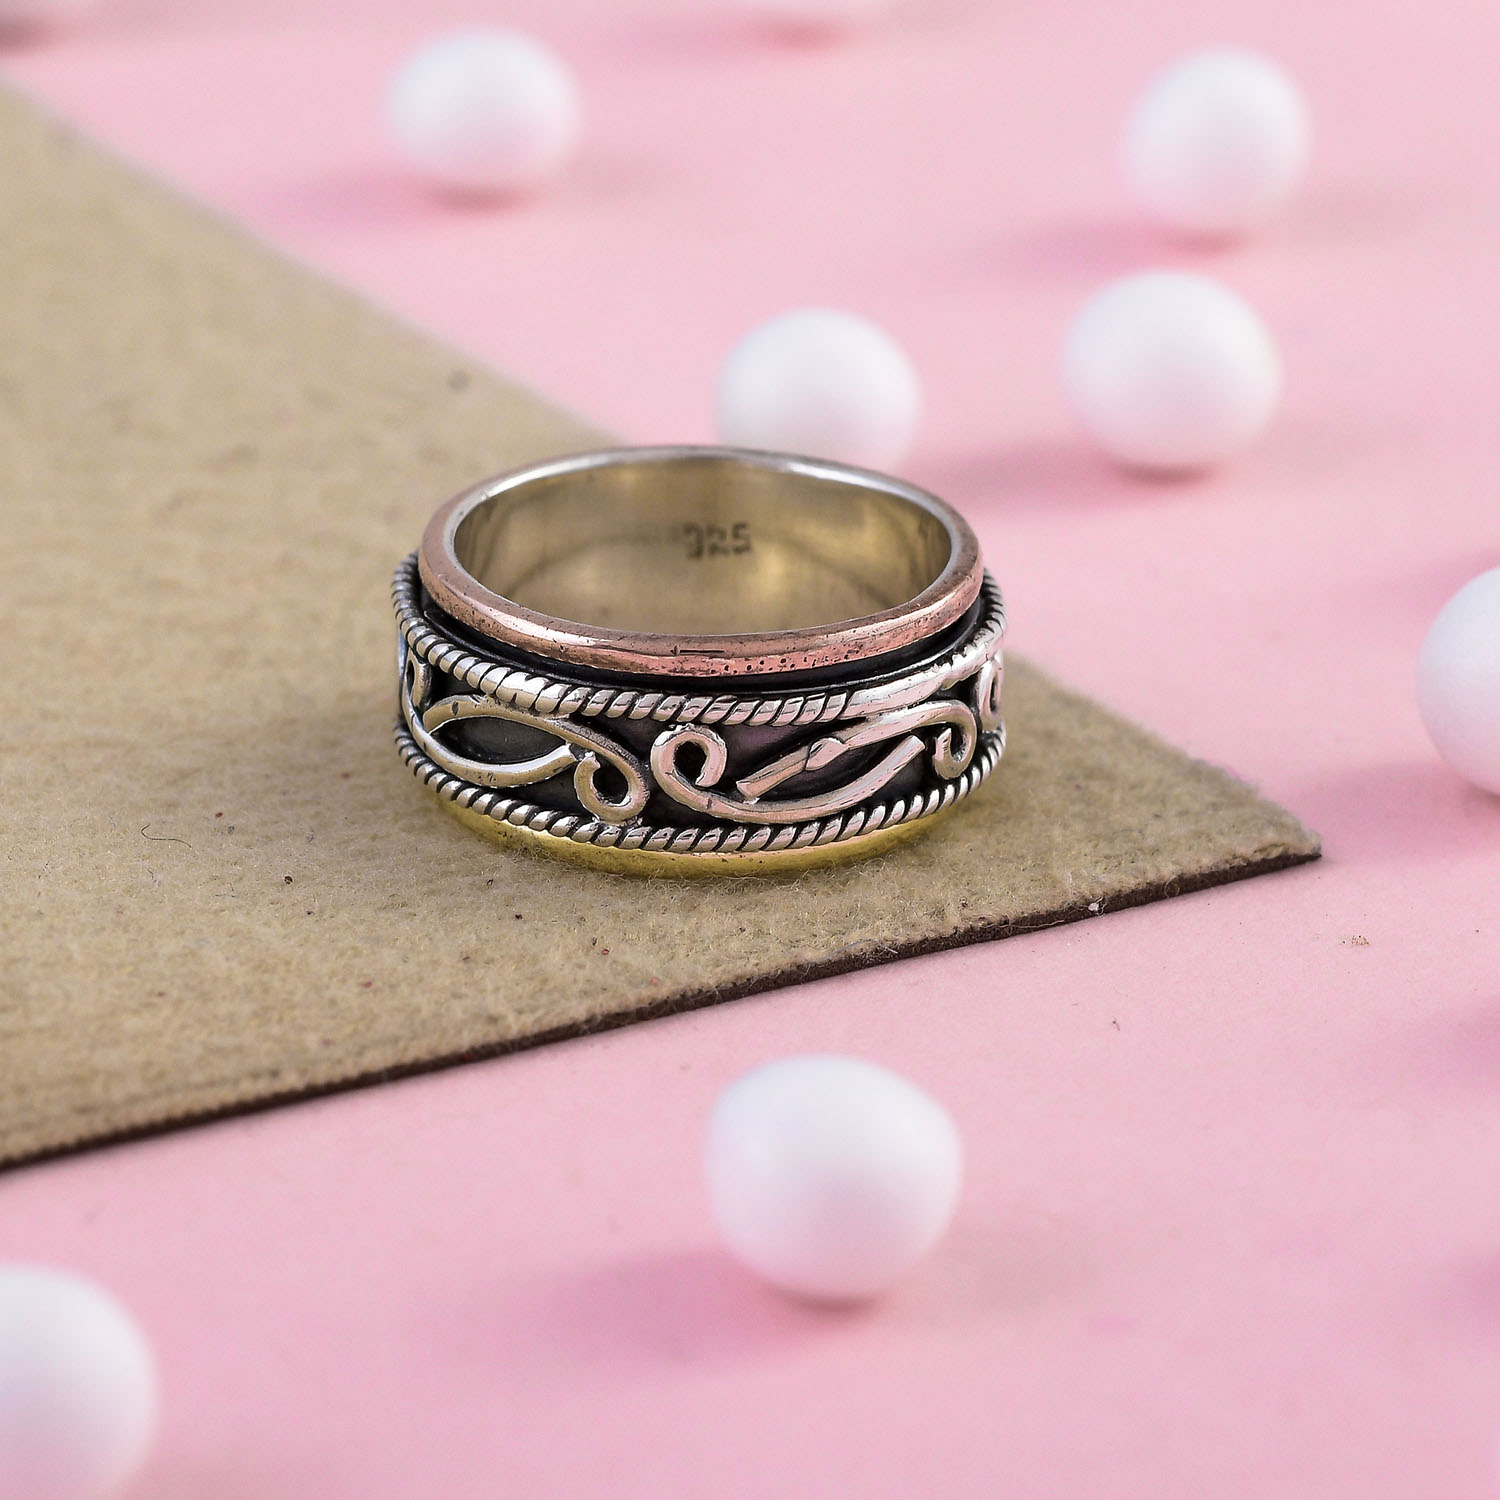 Copper Band /& 925 Sterling Silver Spinner Ring Jewelry Handmade All Size O-51